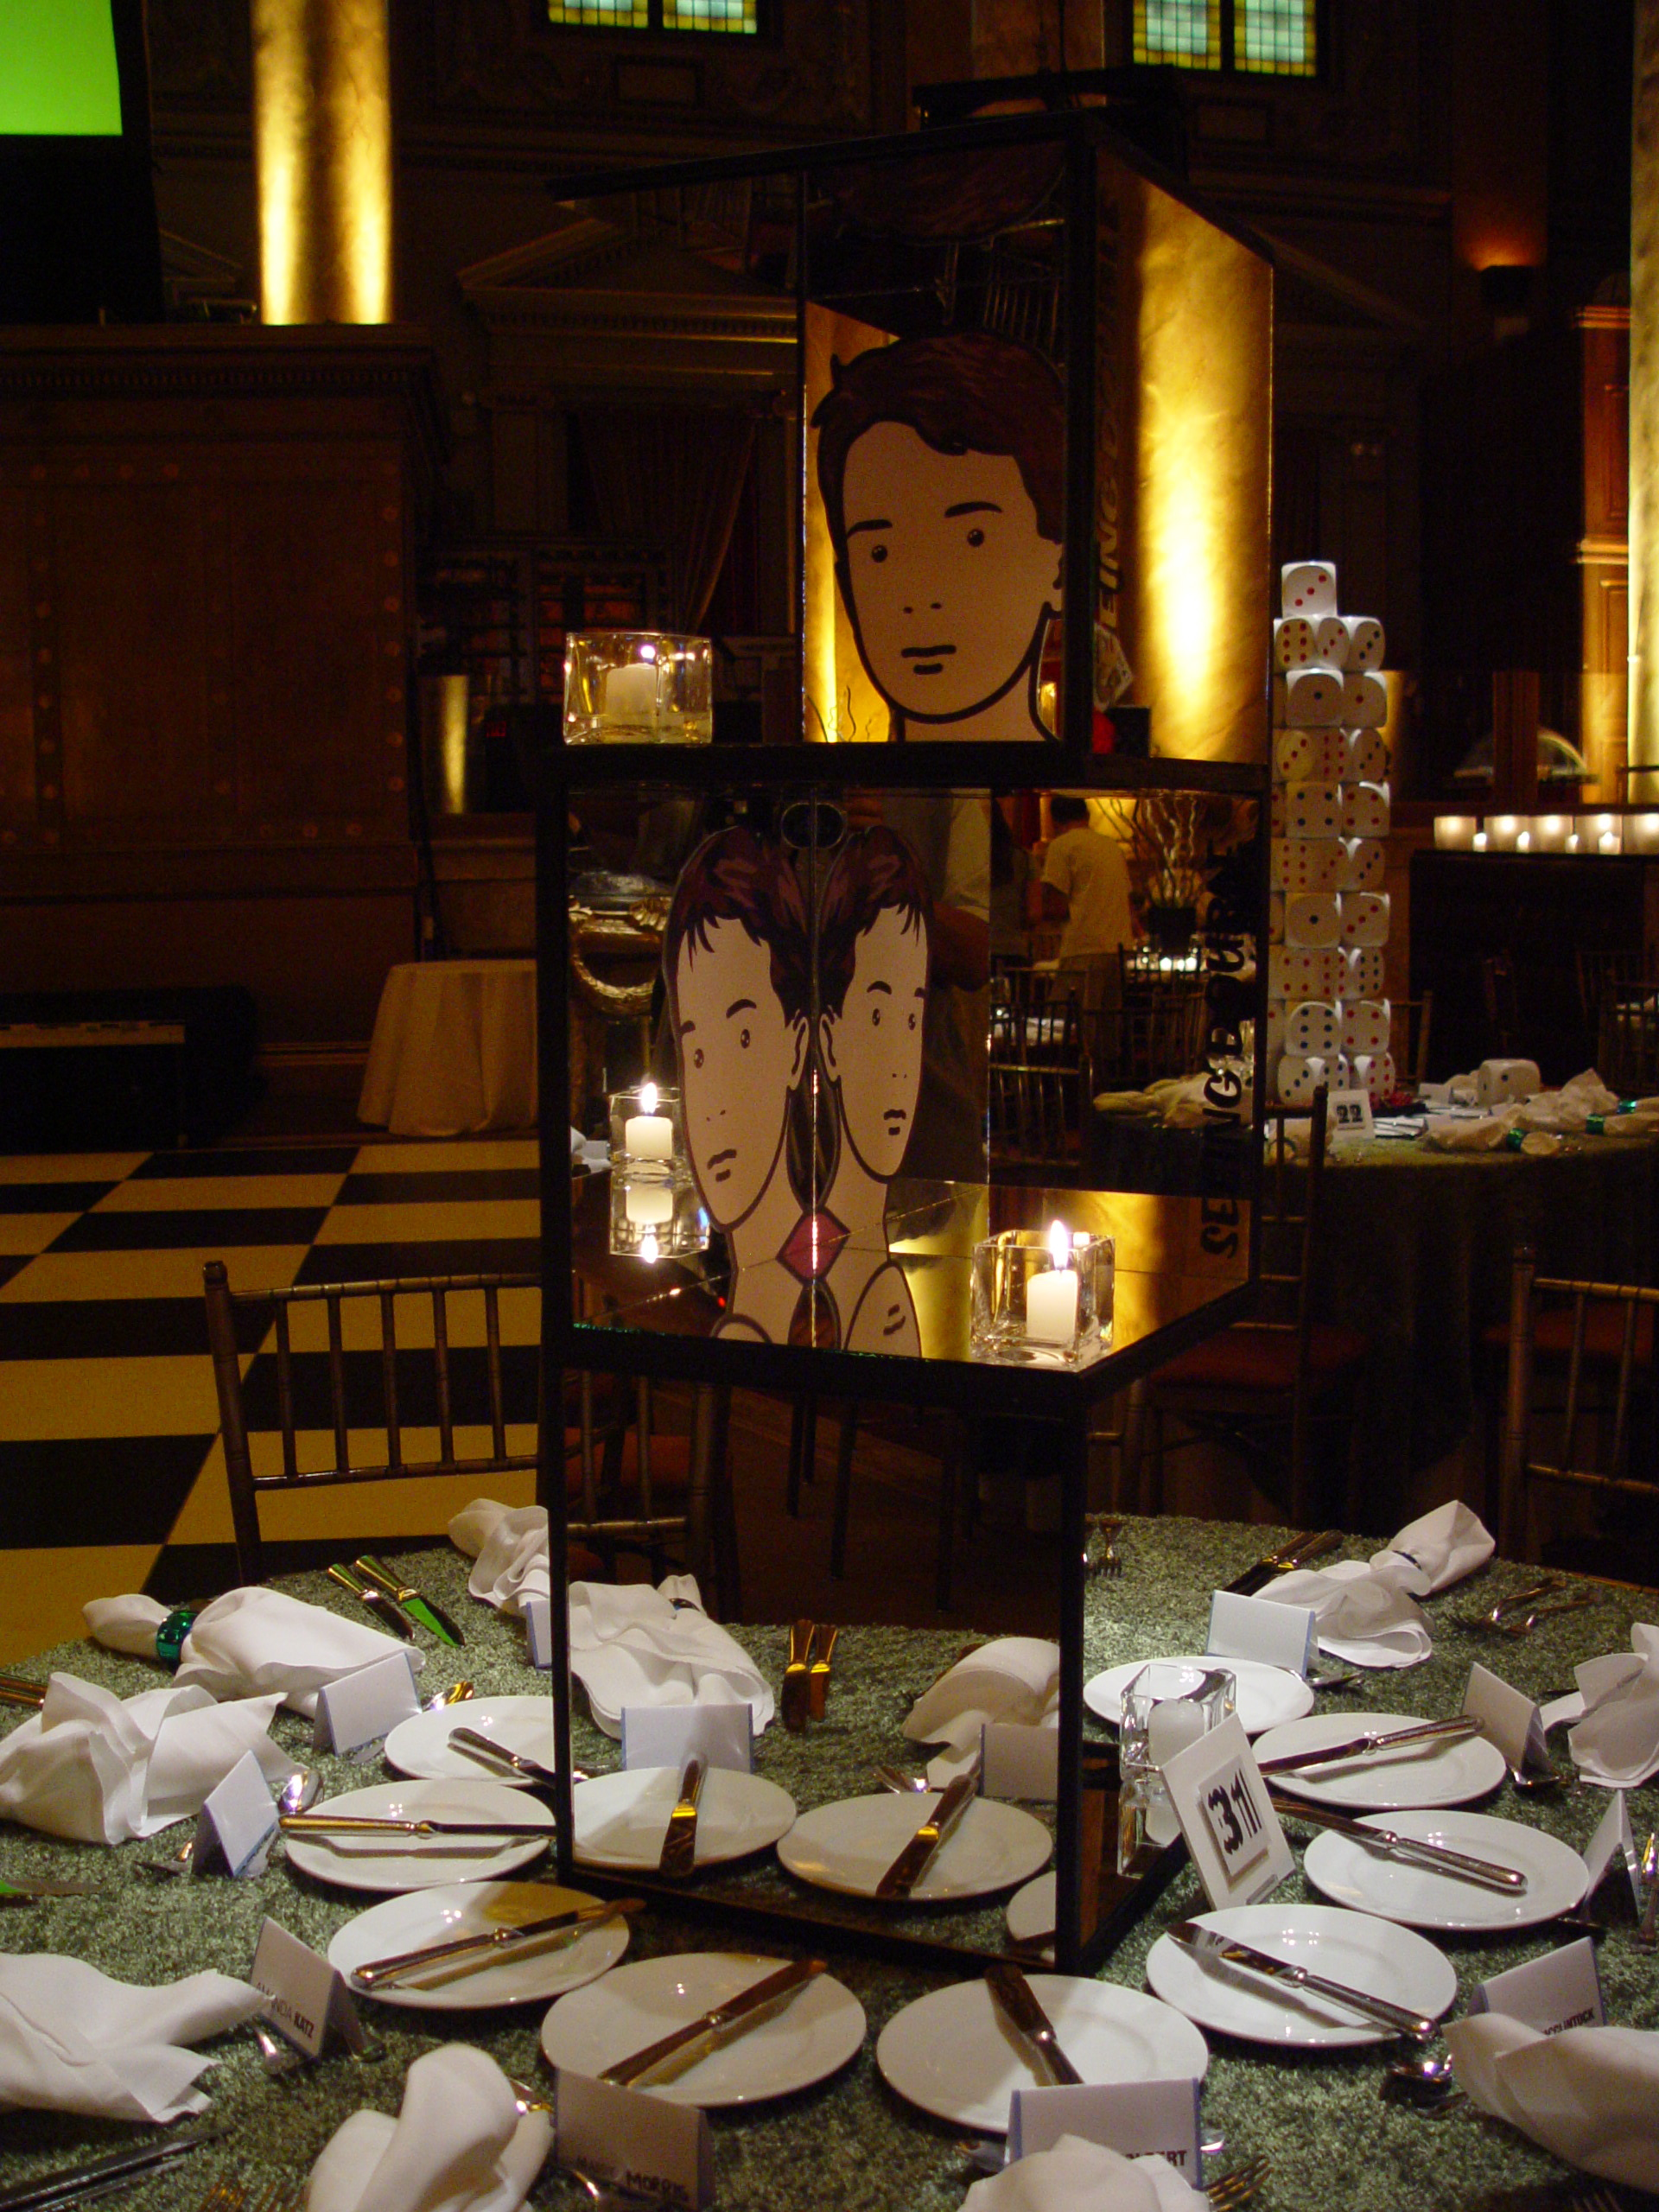 custom+centerpieces+nj+pa+ny+nyc+bar+mitzvah+bat+mitzvah+eggsotic+events.jpg